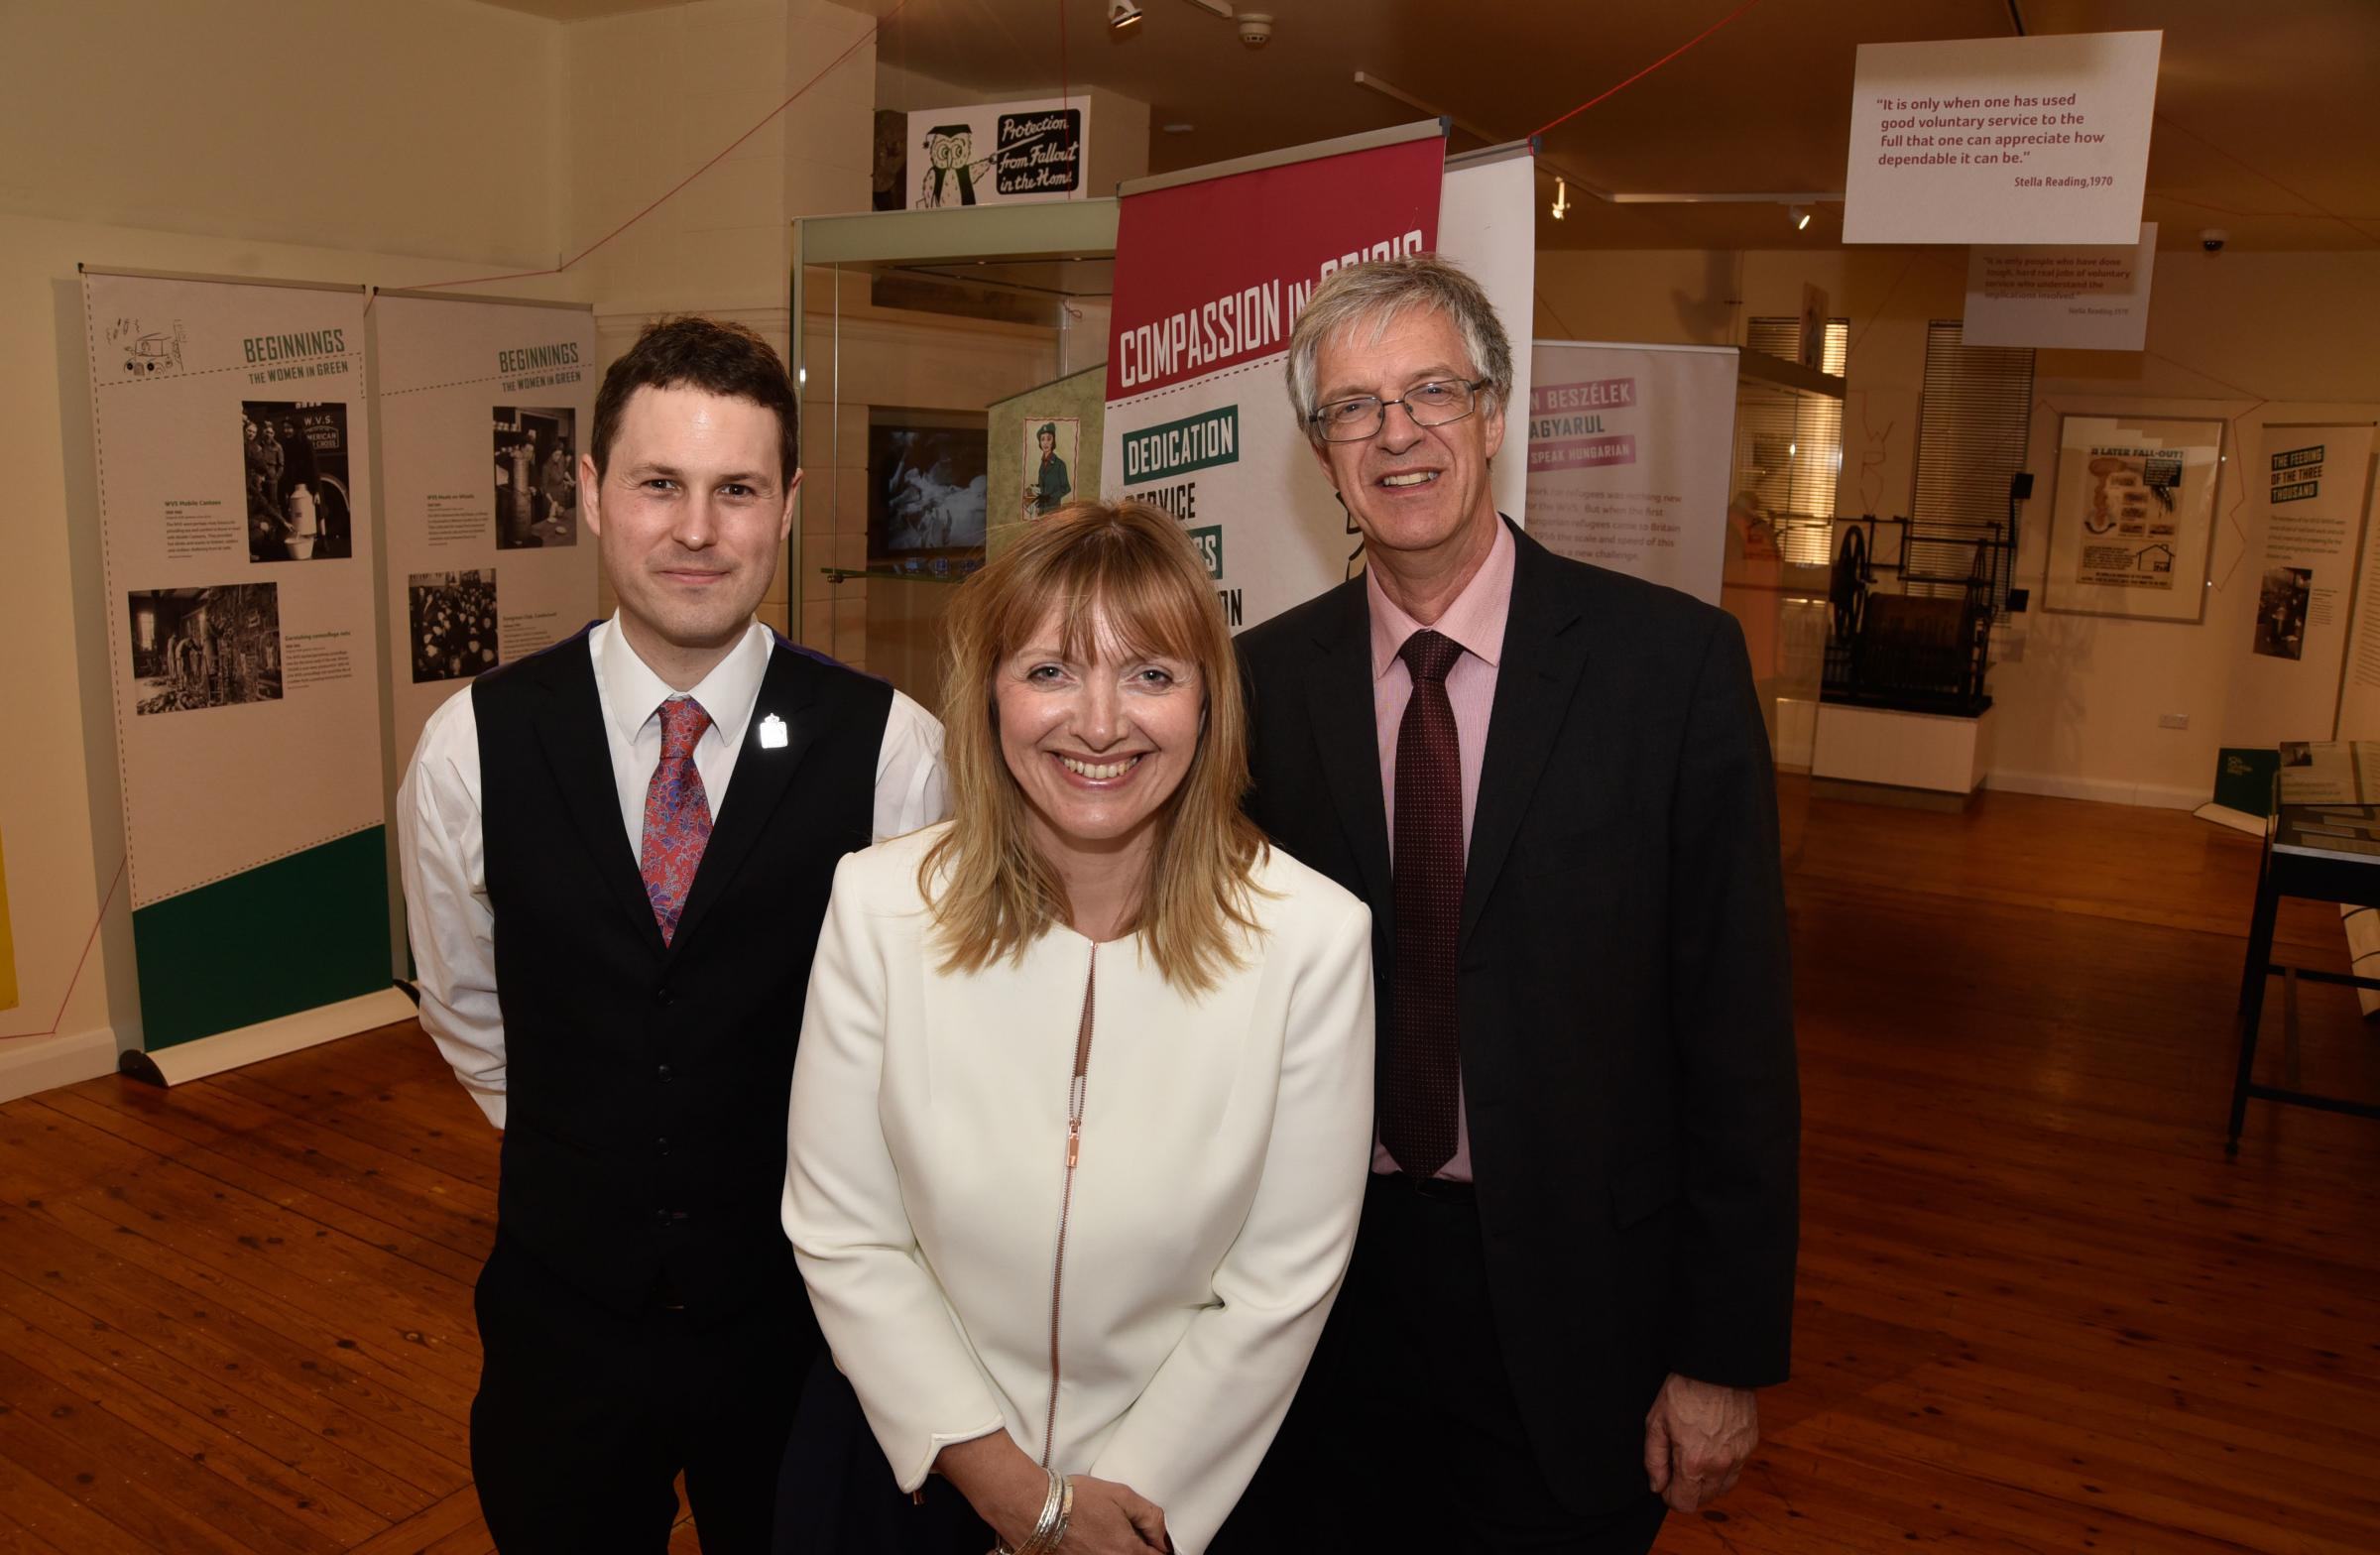 RVS CEO Catherine Johnstone , archivist Matthew McMurray (left) and David Dawson, director wiltshire Museum at Royal Voluntary Service anniversary exhibition aWiltshire Museum, Devizes 16/05/18 ..Photo by Glenn Phillips www.gphillipsphotography.com for Ro